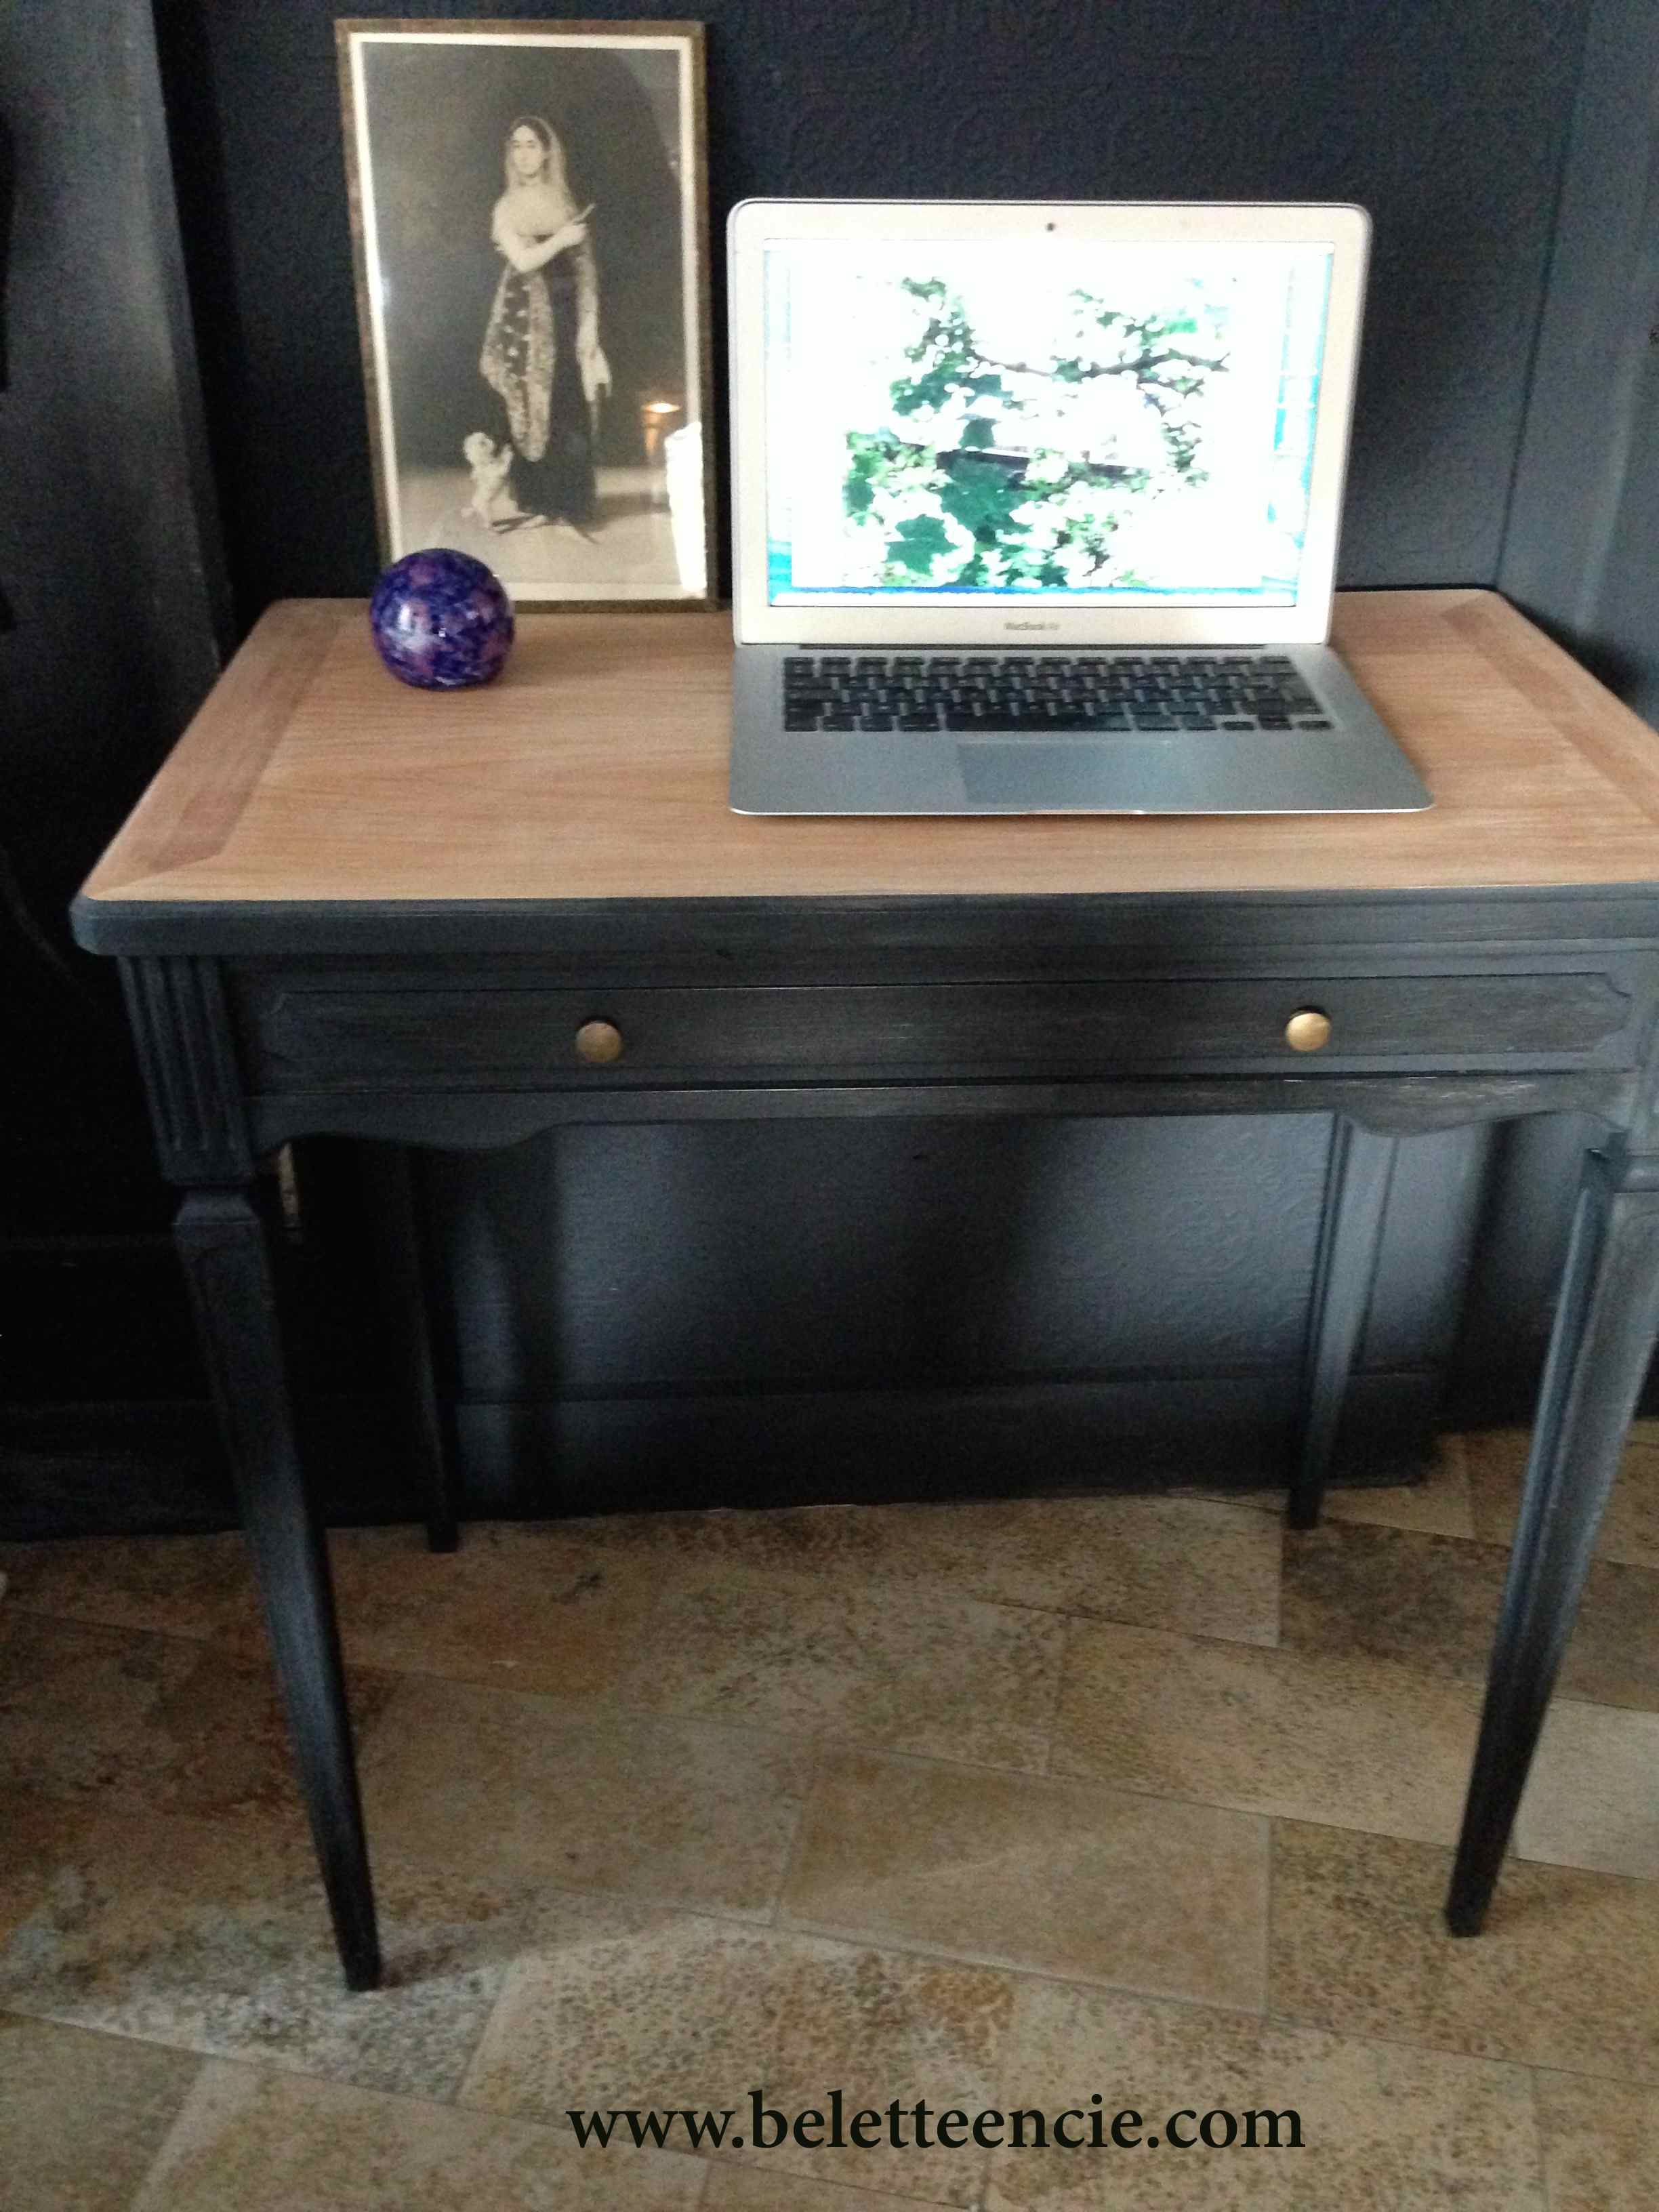 bureau mac mac bureau falsherie un bureau un meuble pour votre mac bureau mac bureau mac 28. Black Bedroom Furniture Sets. Home Design Ideas